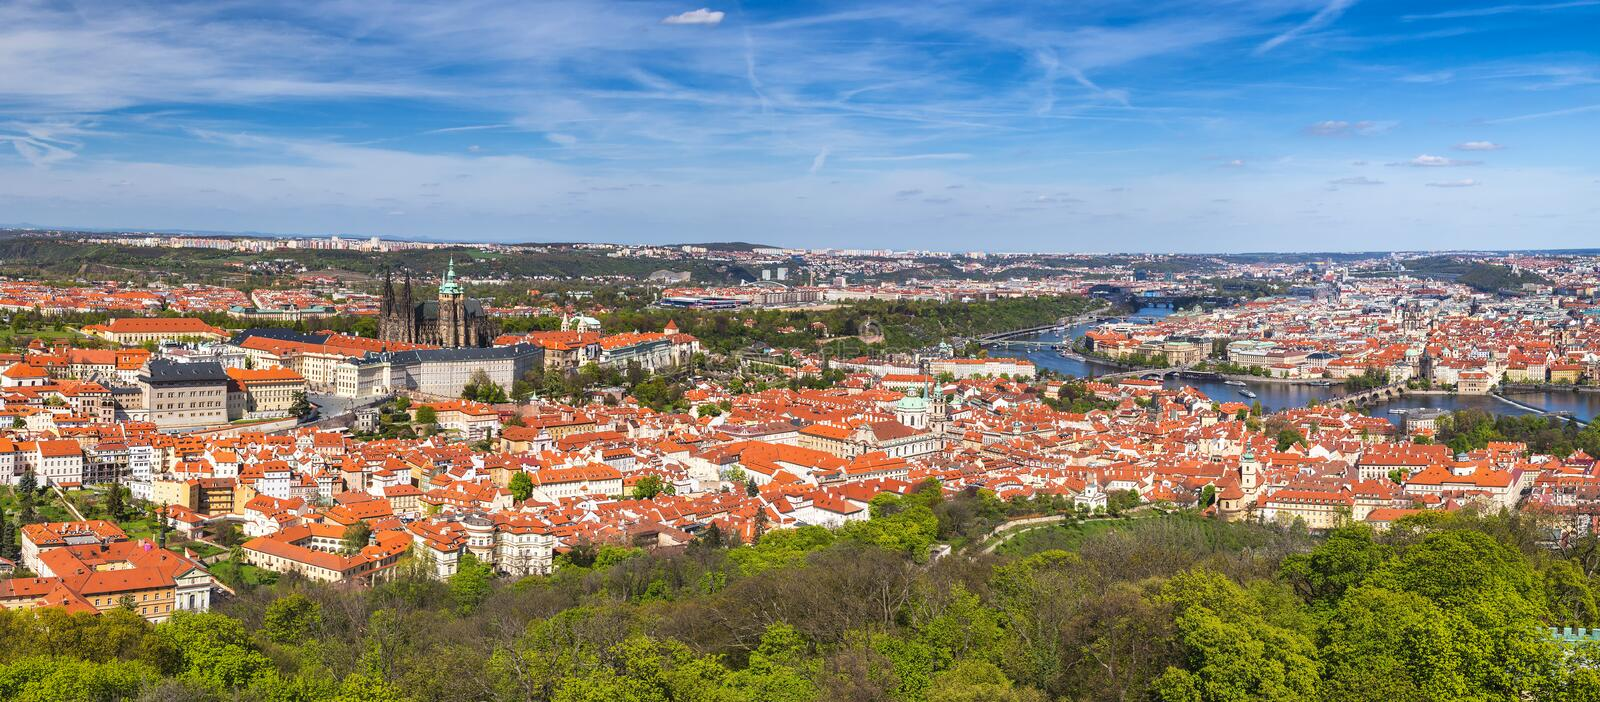 Prague panorama city skyline with Old Town, Prague Castle, Charles Bridge, St. Vitus Cathedral. Prague, Czech Republic royalty free stock images